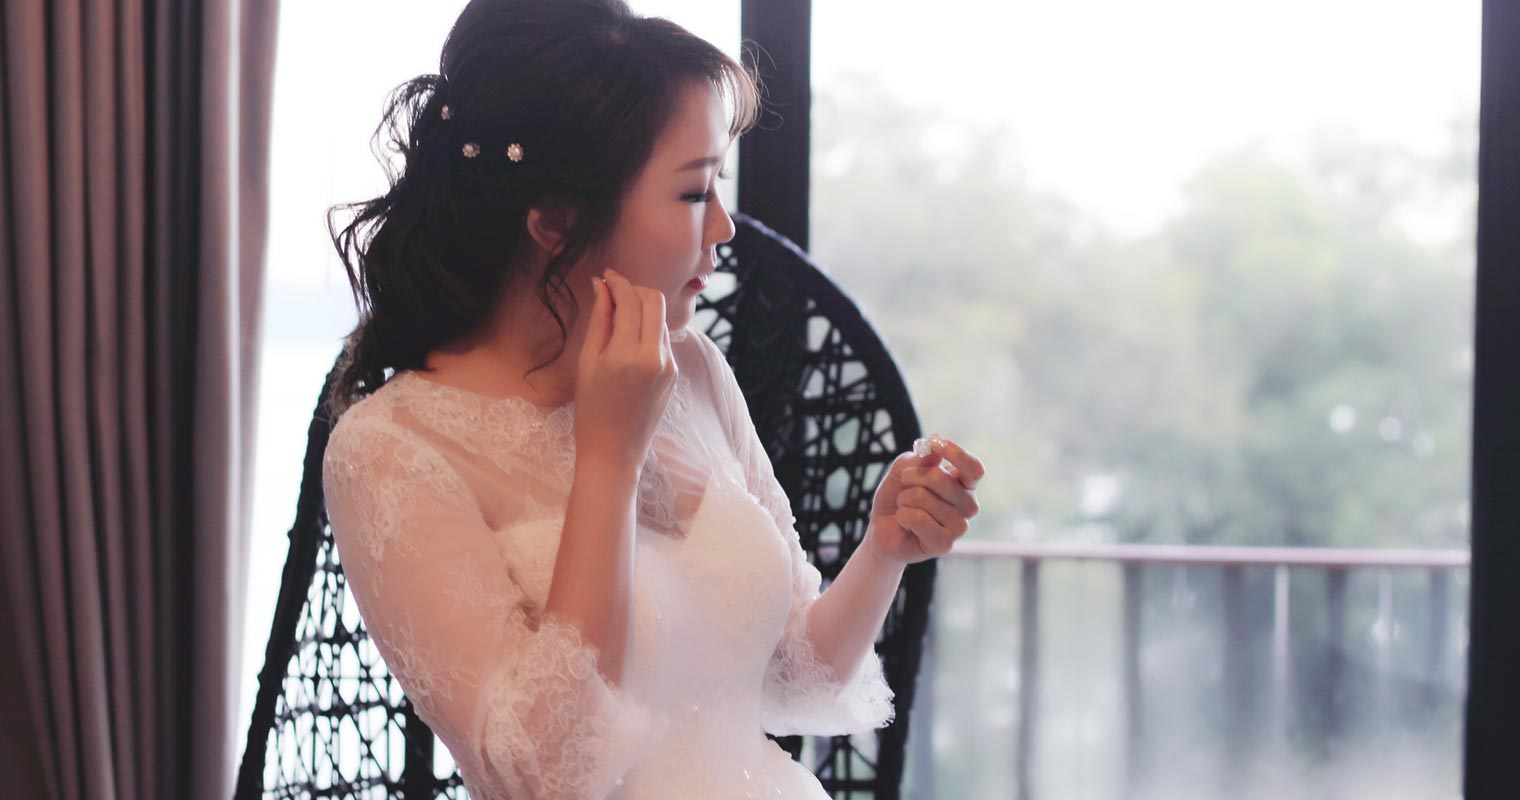 Skin prep before your big day is important! The last thing you want is flaking skin on your wedding day.